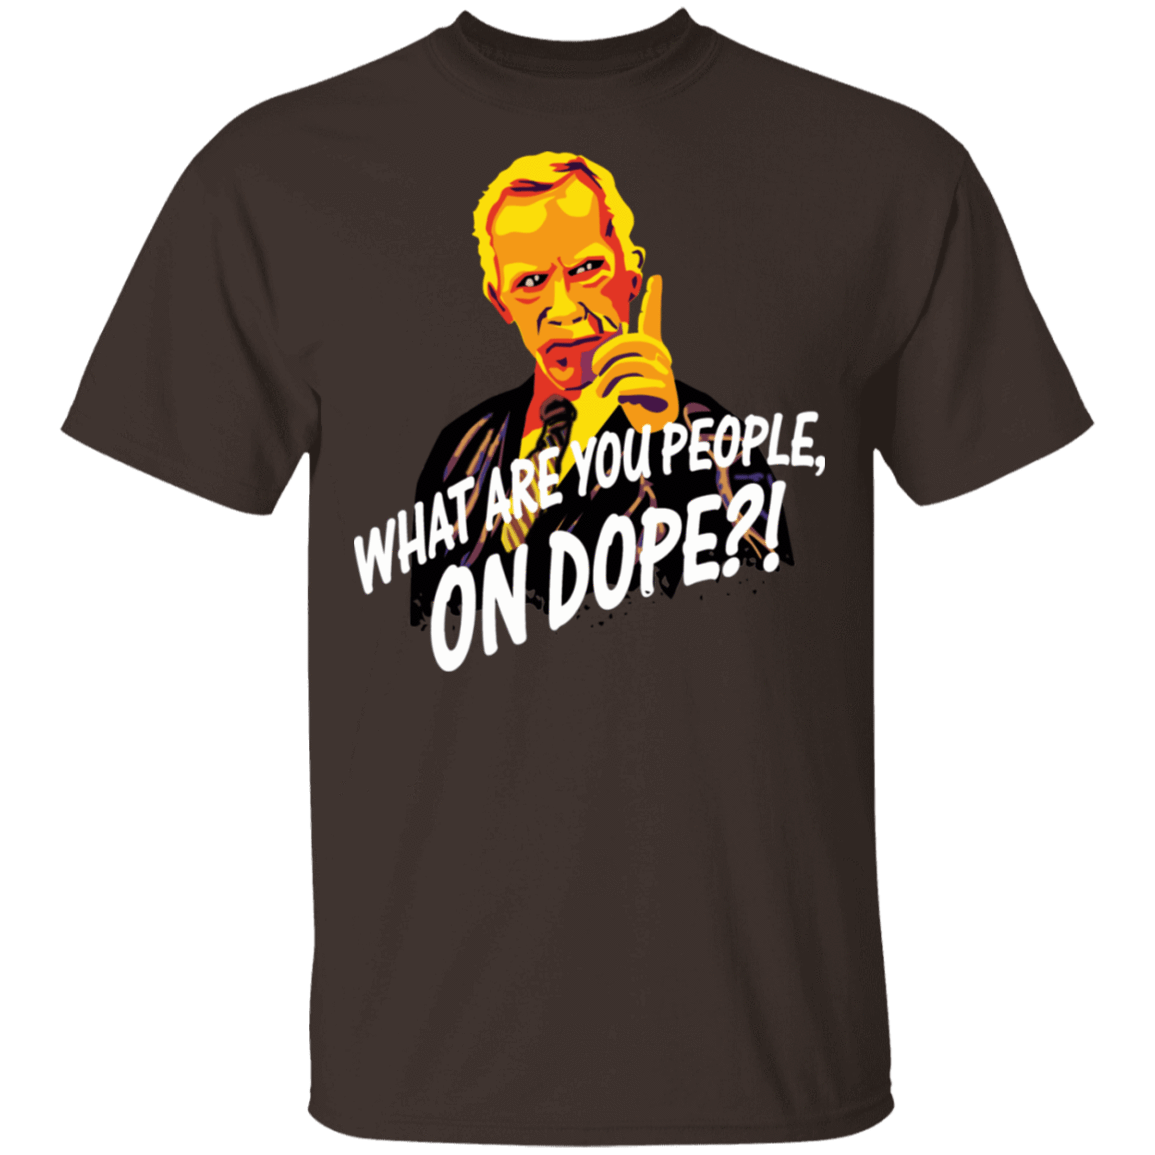 Mr Hand What Are You People On Dope T-Shirts, Hoodies, Tank 22-2283-79715840-12087 - Tee Ript